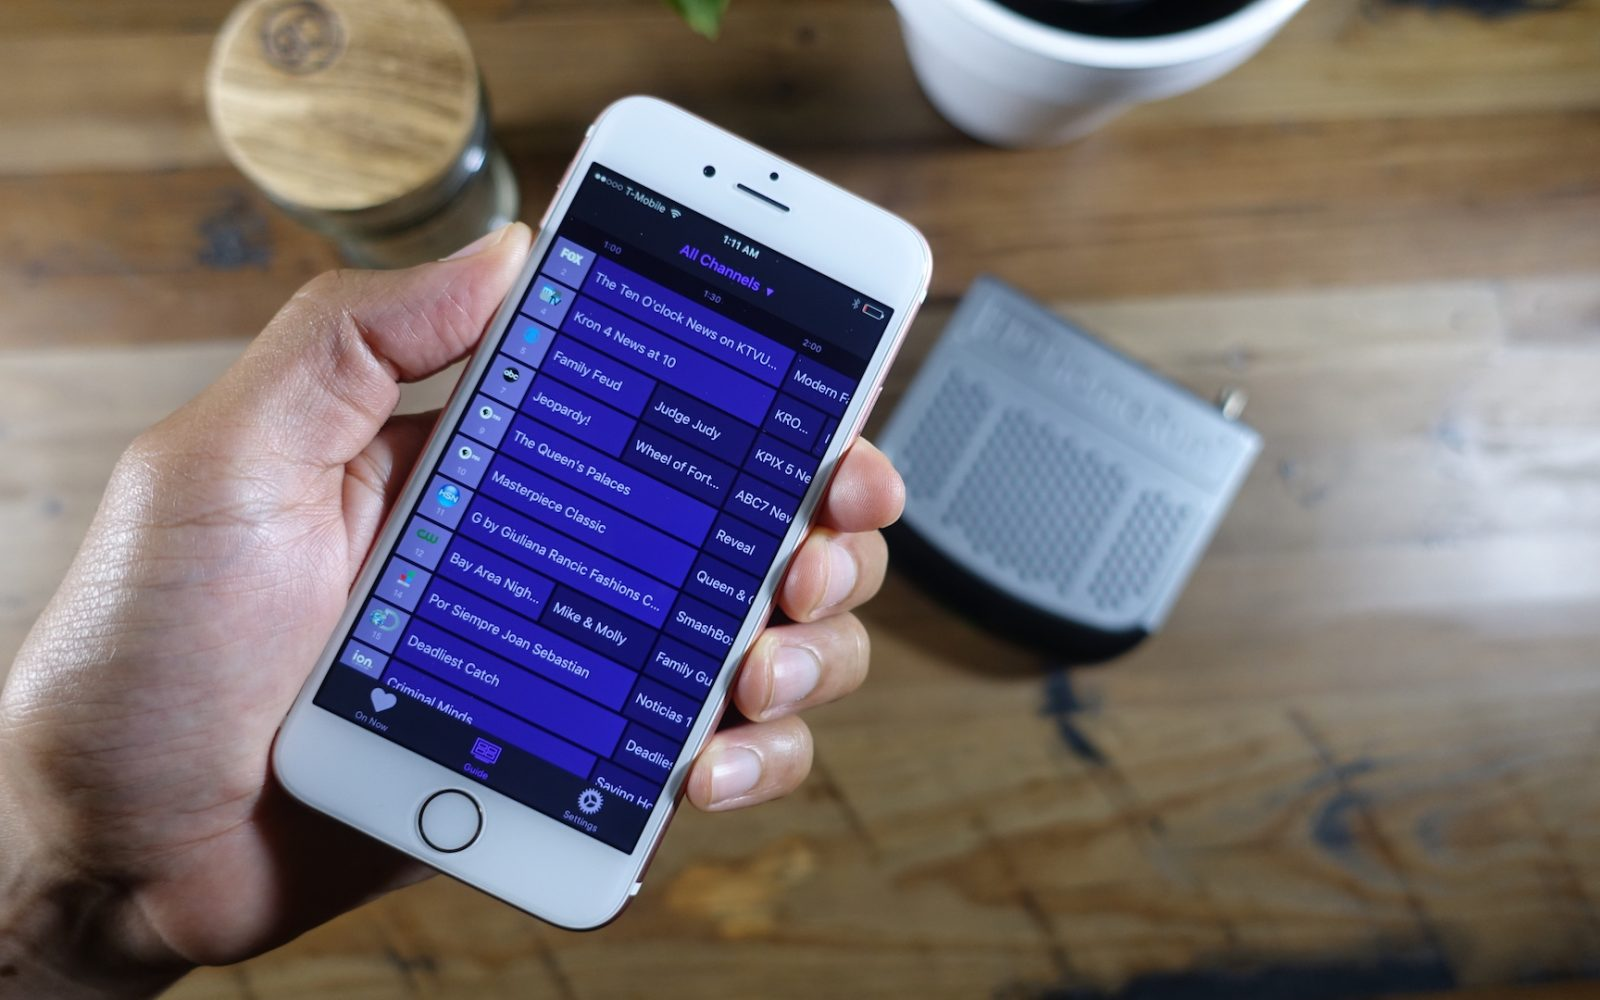 Hands-on: Channels for iOS - a beautiful live local TV solution for